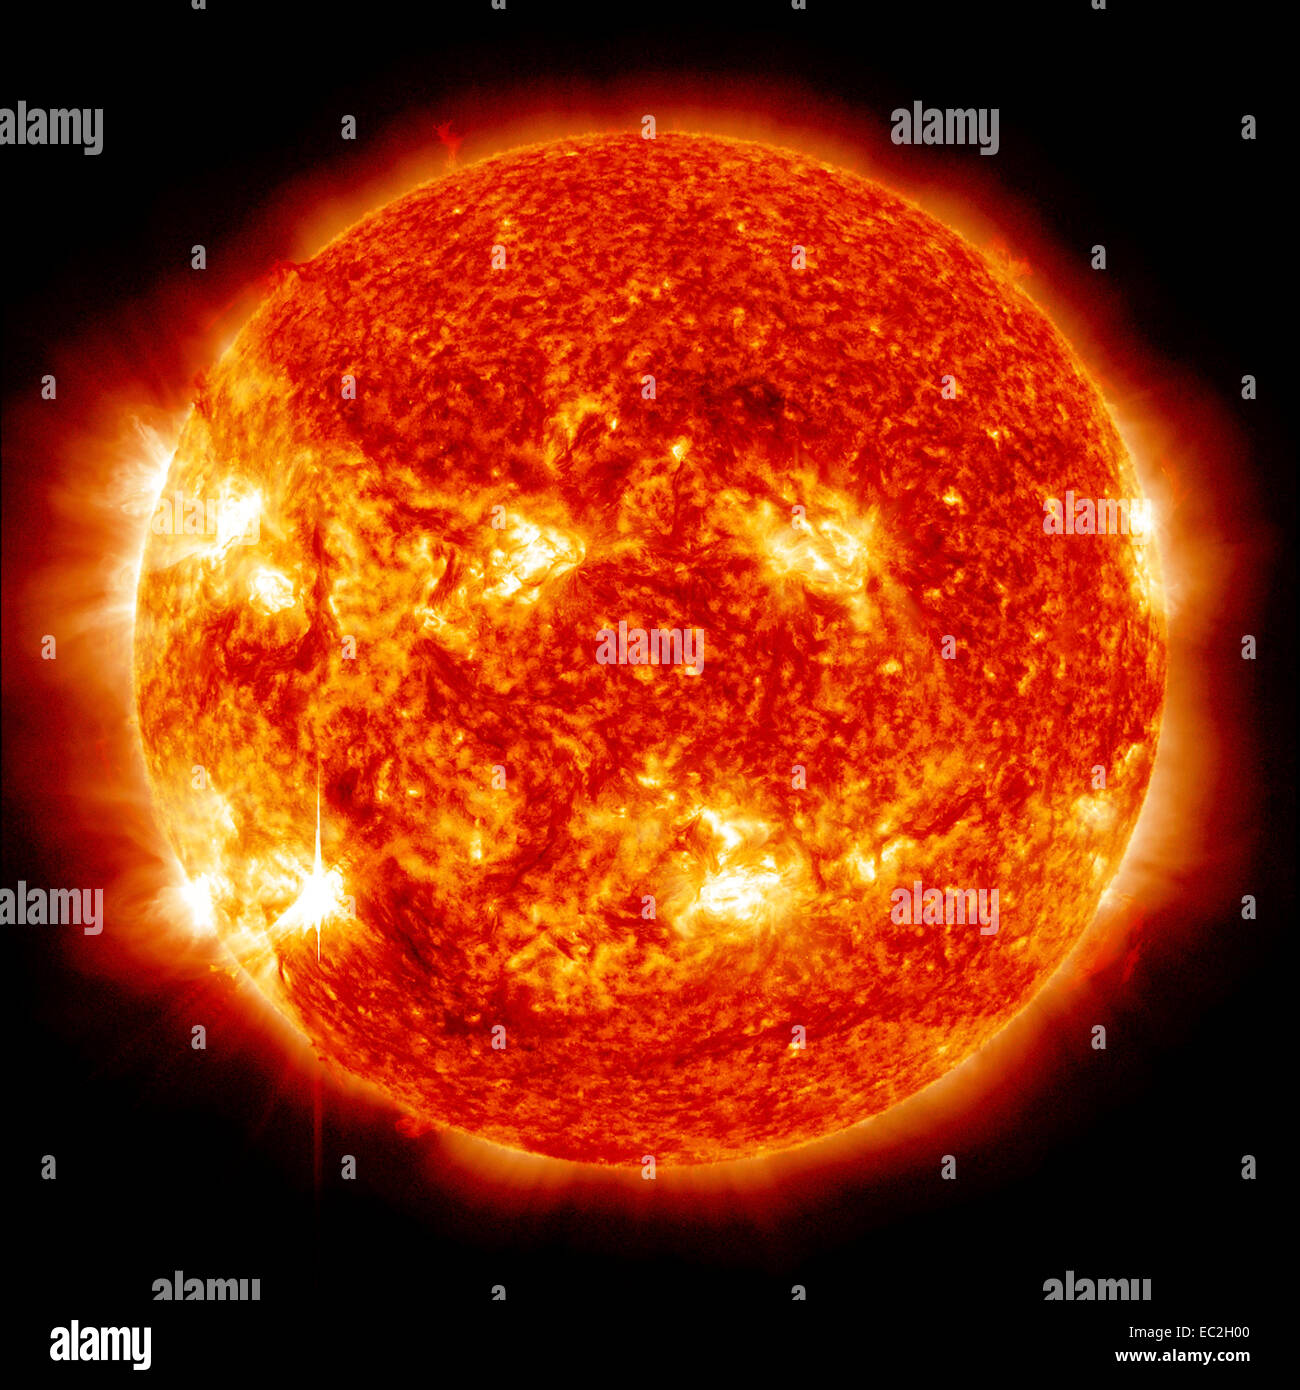 explosions on the sun - Stock Image